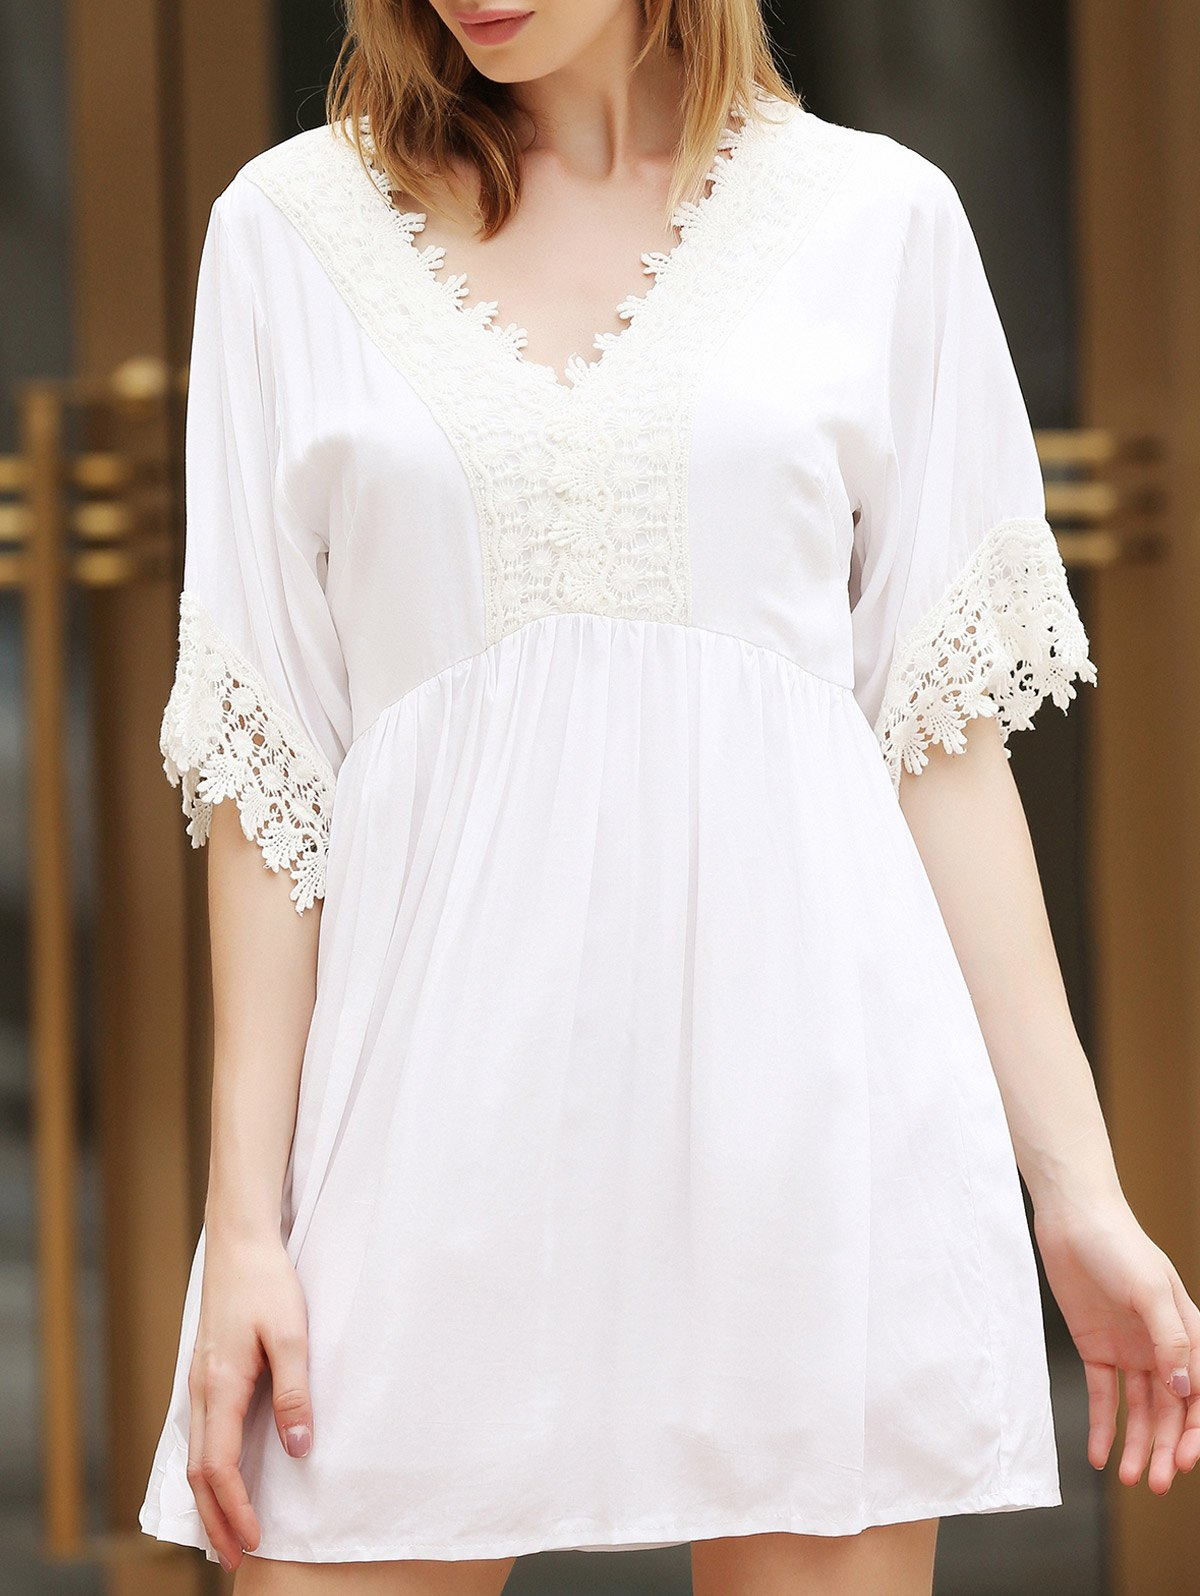 Lace Splicing Short Sleeve V-Neck White Color High-Waisted Loose Dress